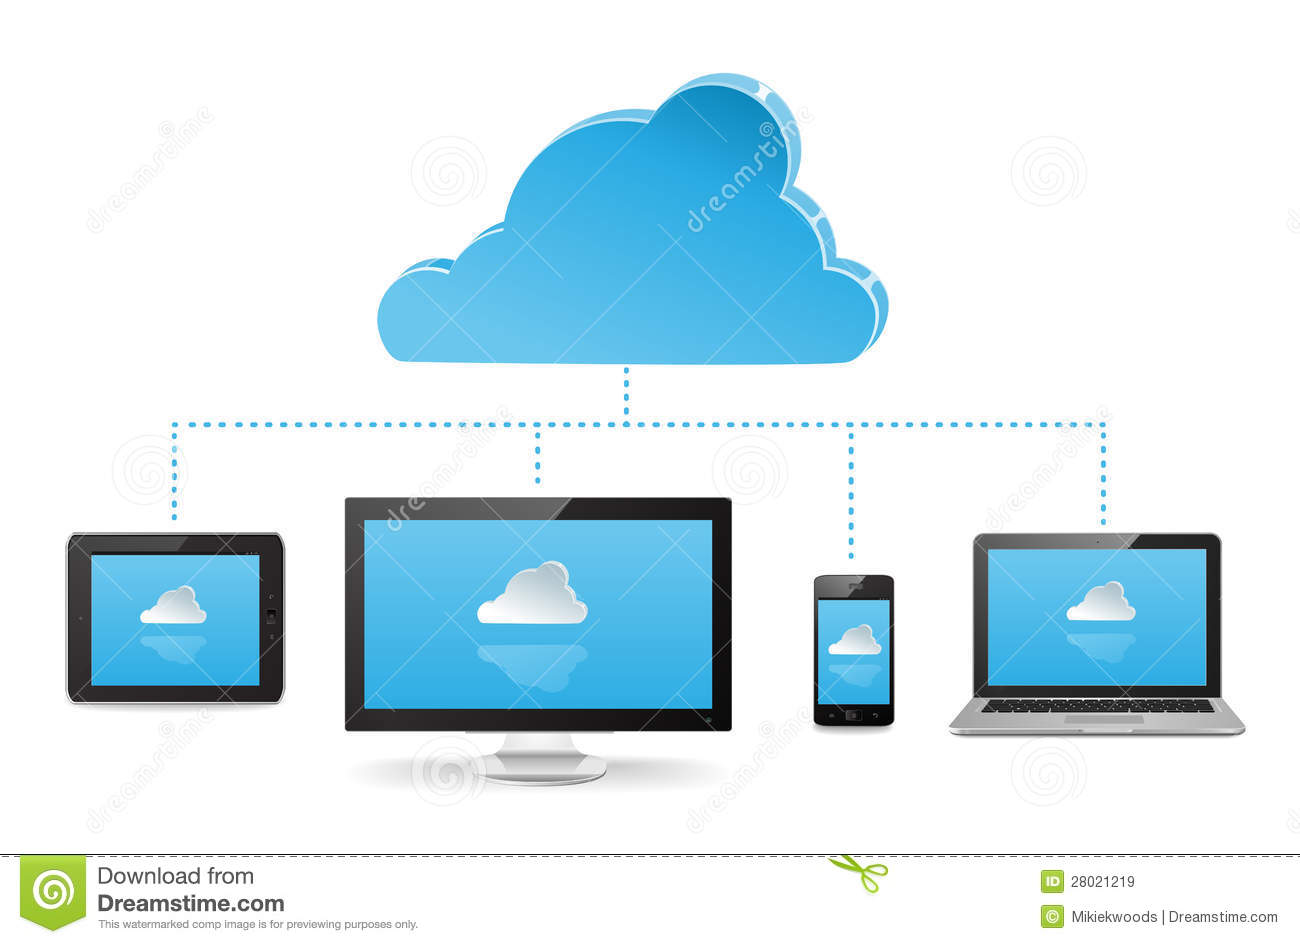 Laptop, PC, smartphone, and laptop connected to a cloud server that ...